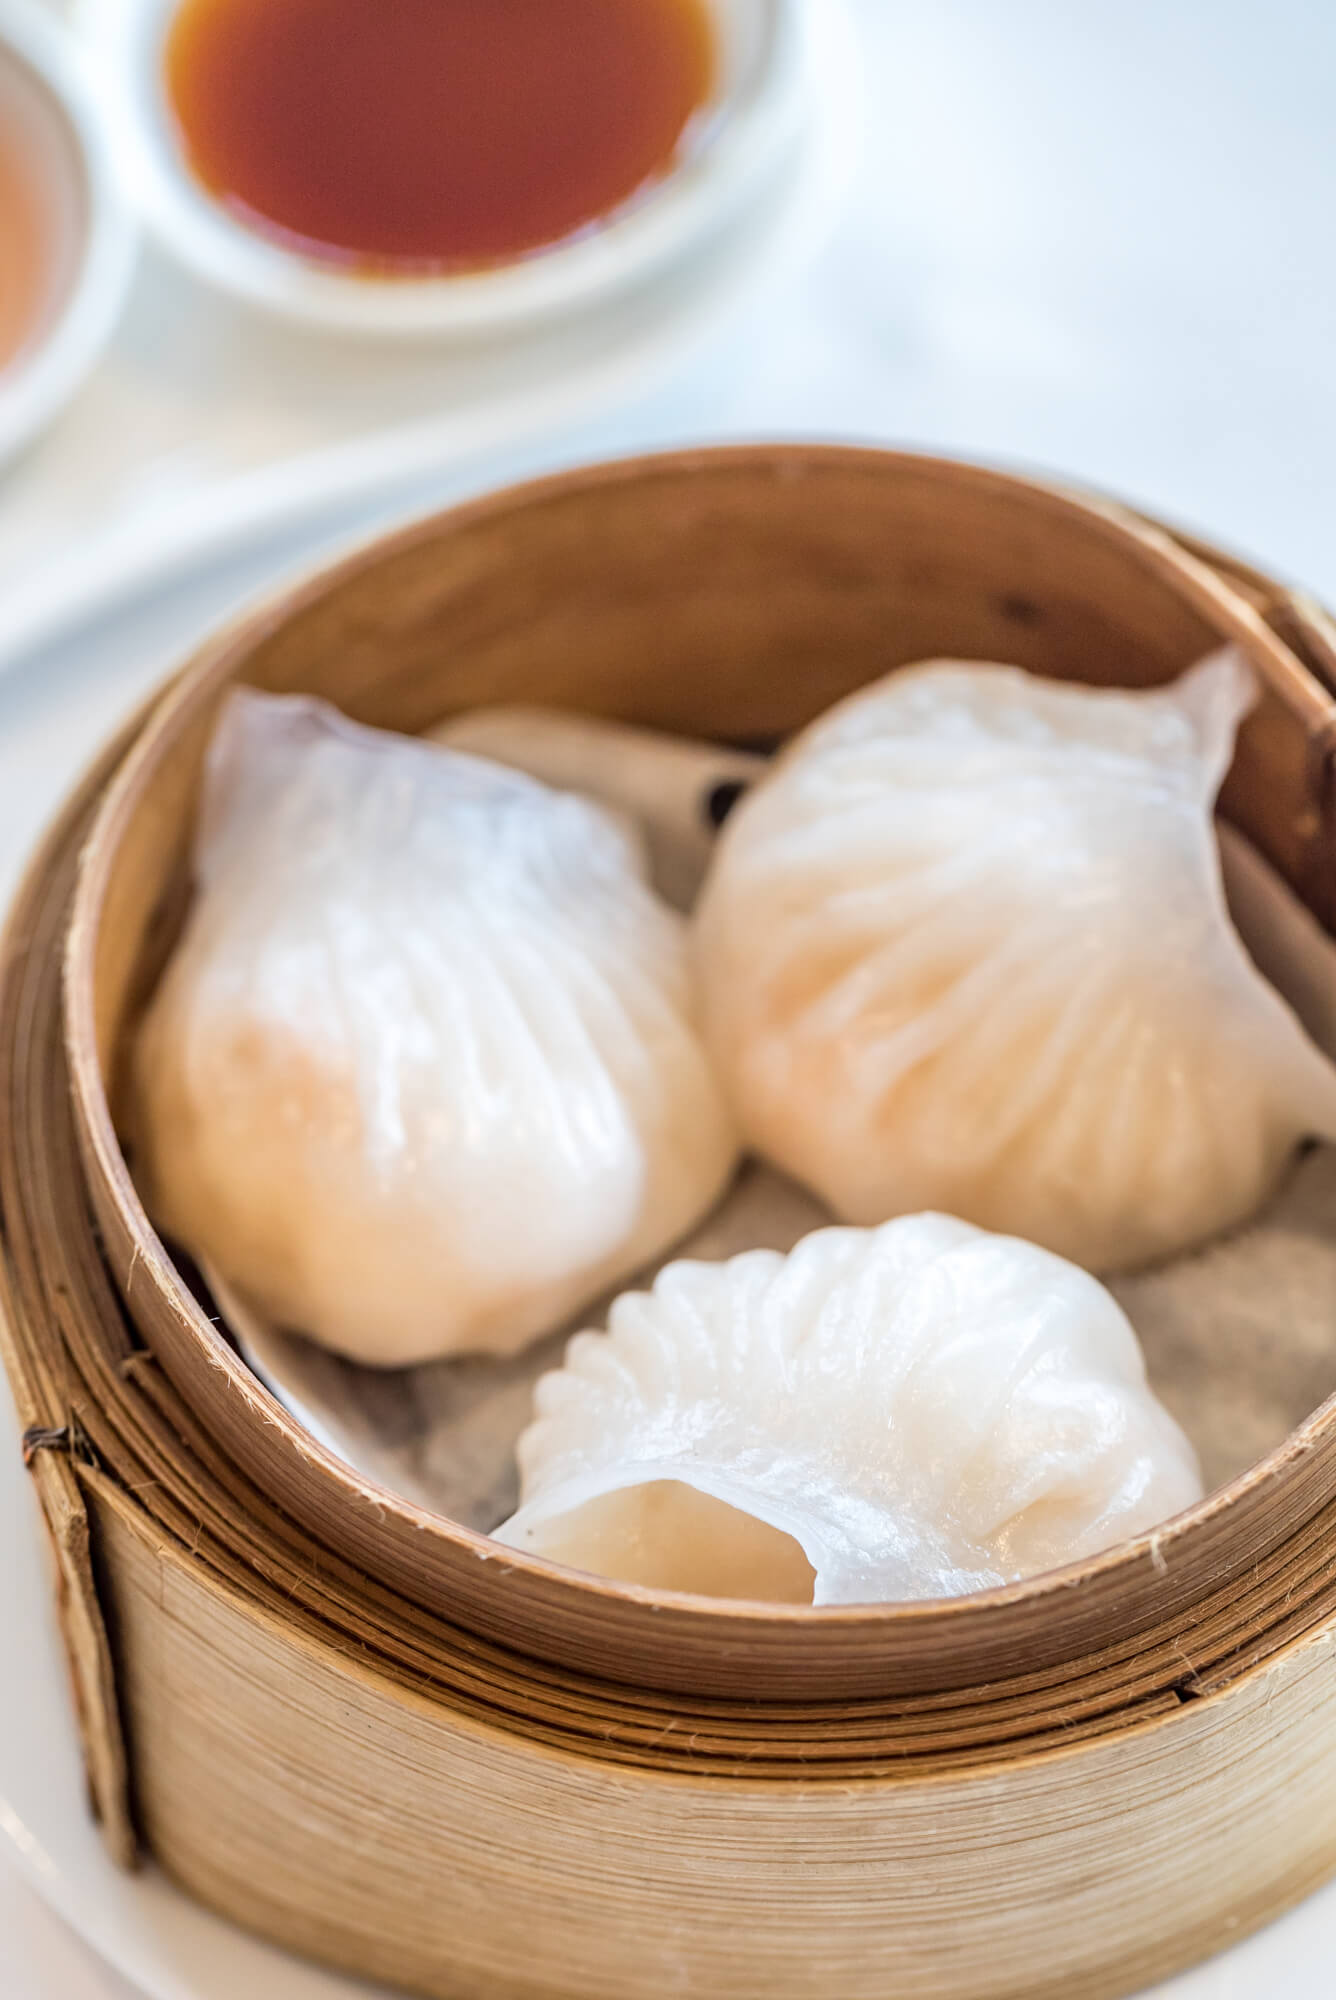 Har Gow Cantonese shrimp dumplings famous in dim sum, presented in a traditional bamboo steamer